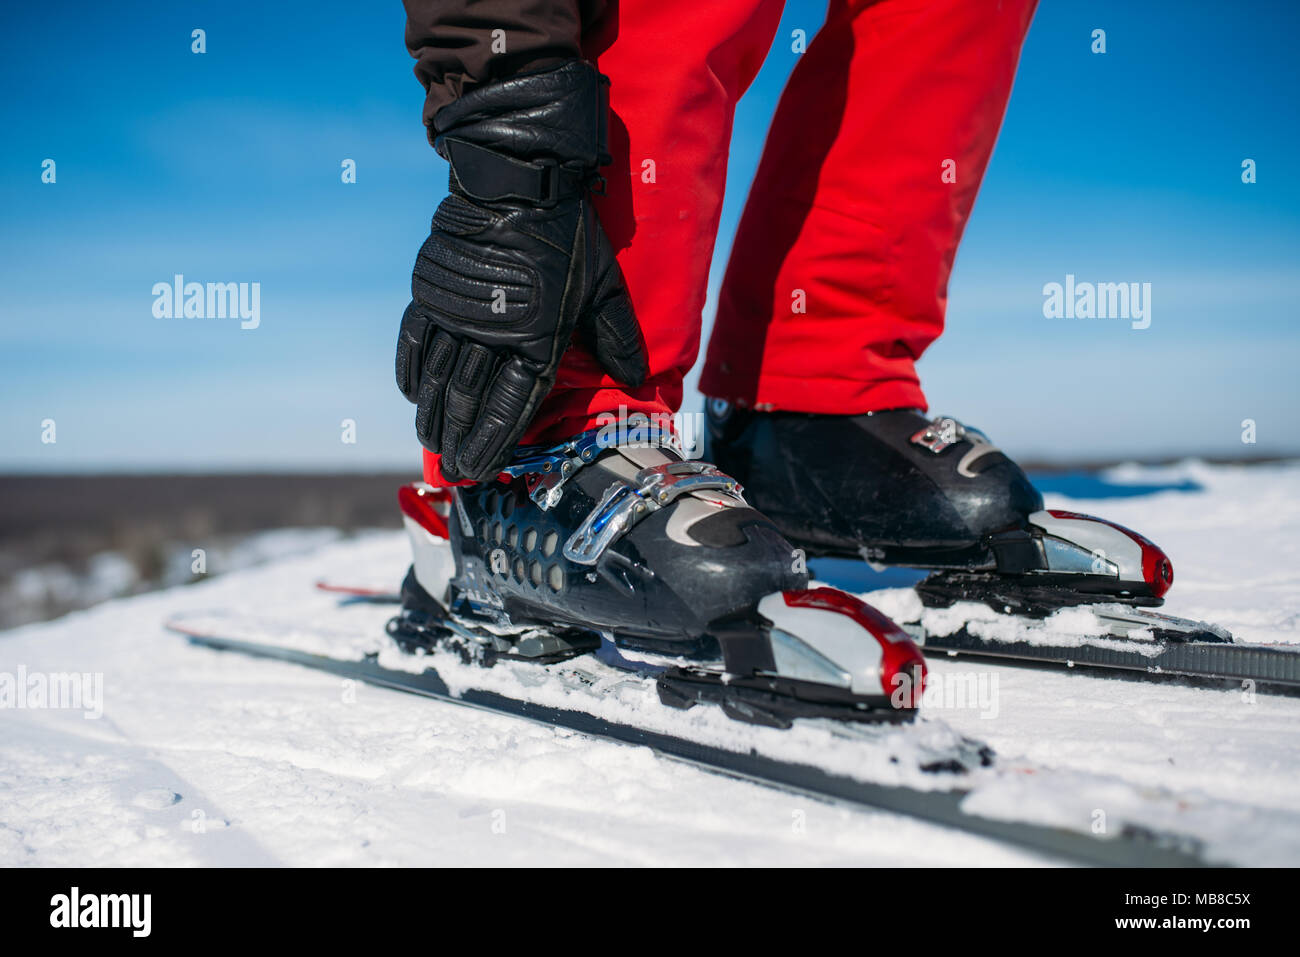 Skier hand fastens the fastening of skis closeup. Winter active sport, extreme lifestyle. Downhill skiing - Stock Image